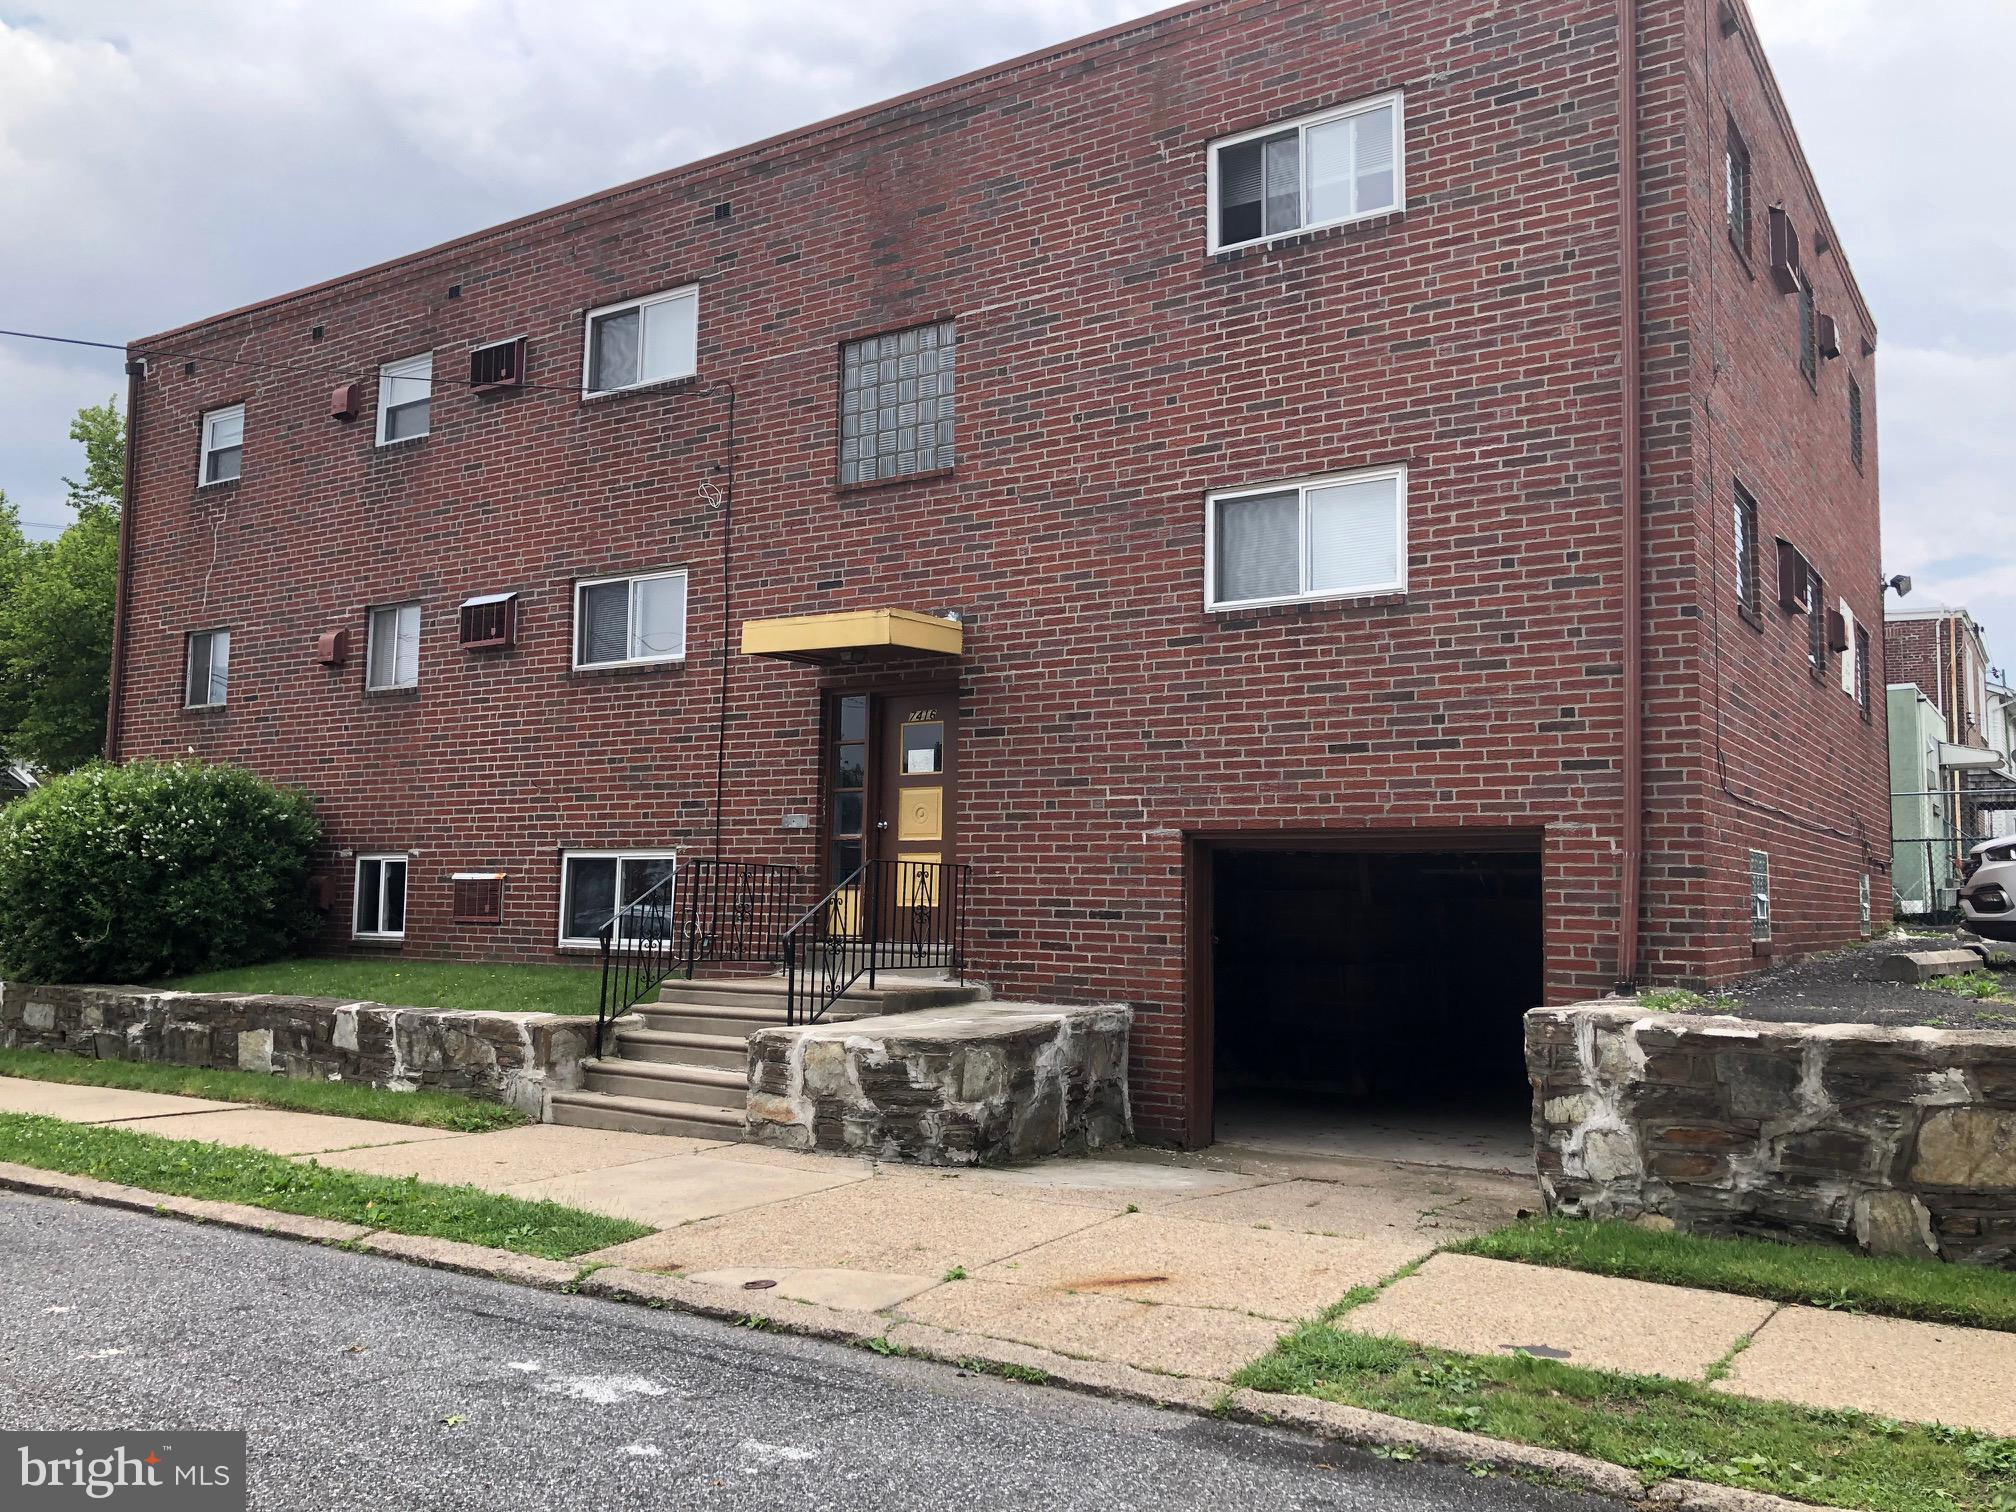 7416 WHITAKER AVENUE, PHILADELPHIA, PA 19111